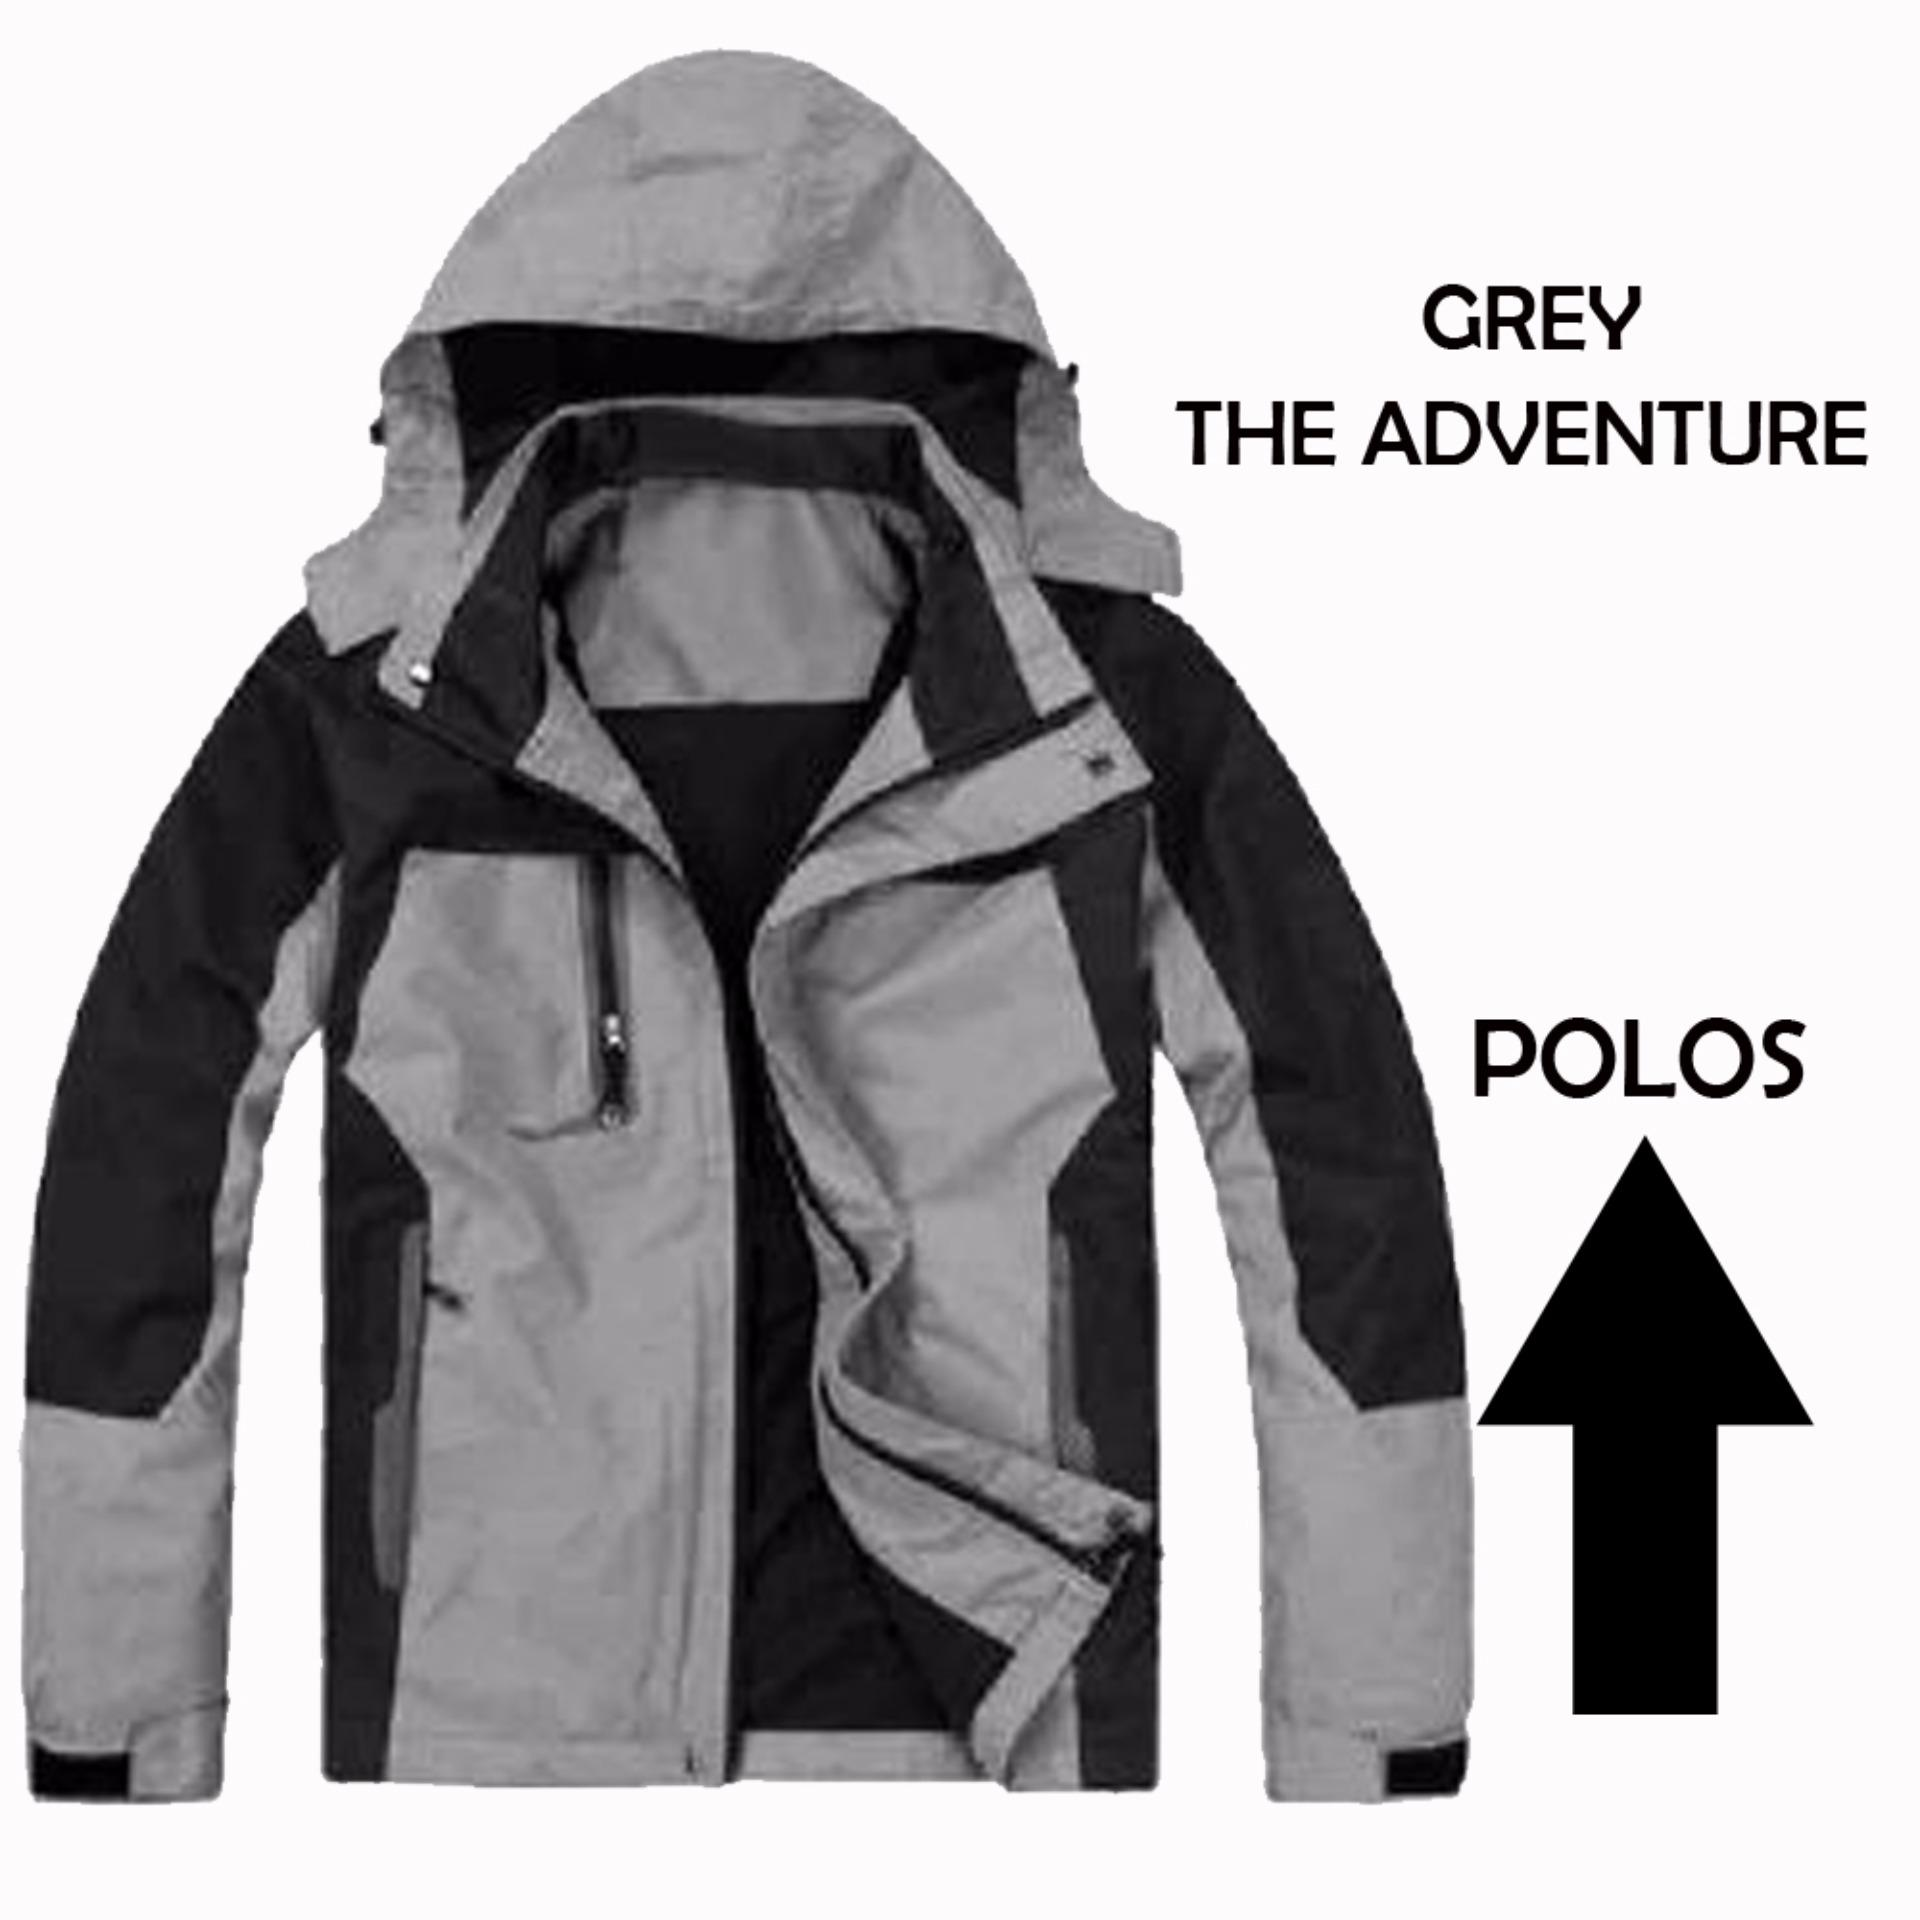 Diskon Jaket Parasut Waterproof The Adventure Grey Polos Rst269 Di Indonesia